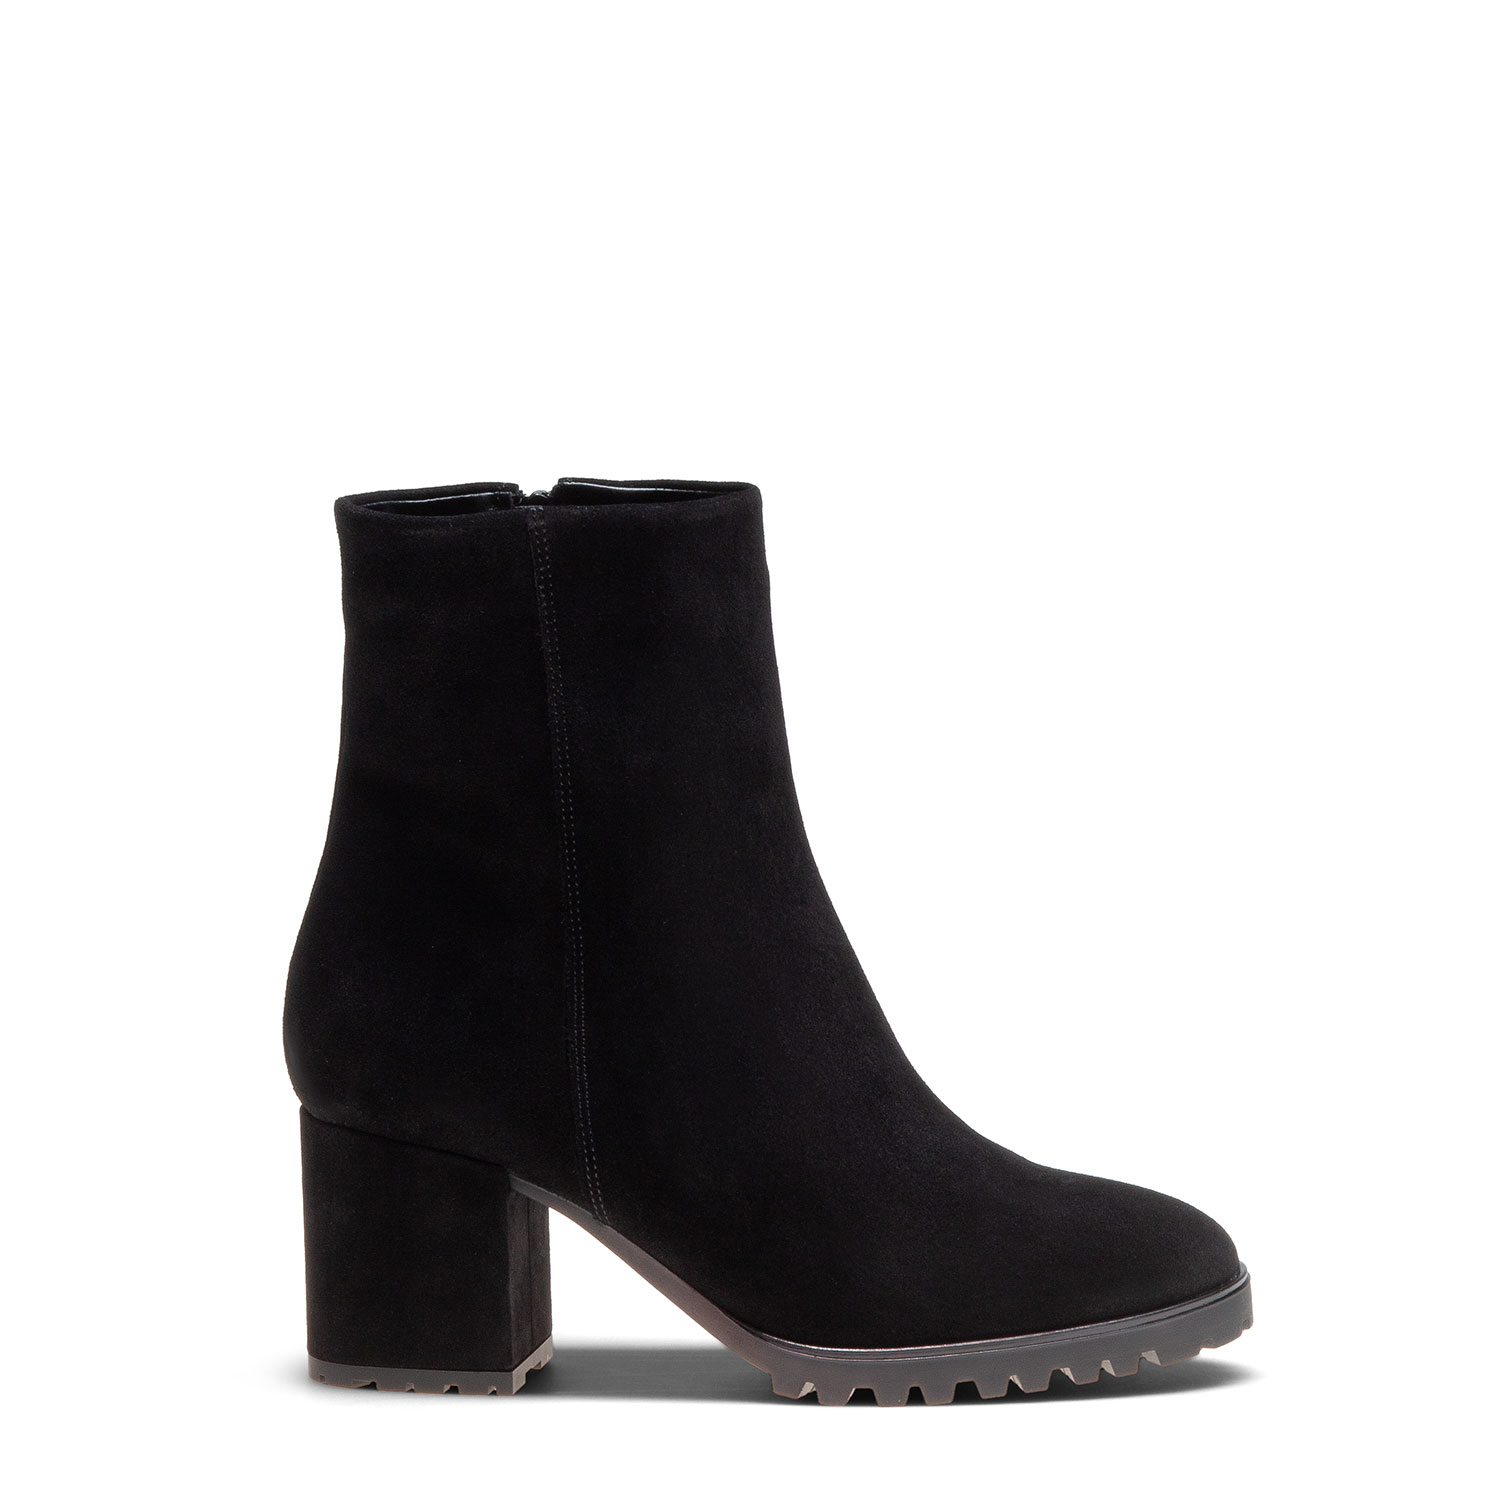 Women's ankle boots PAZOLINI AM-X4637-1V